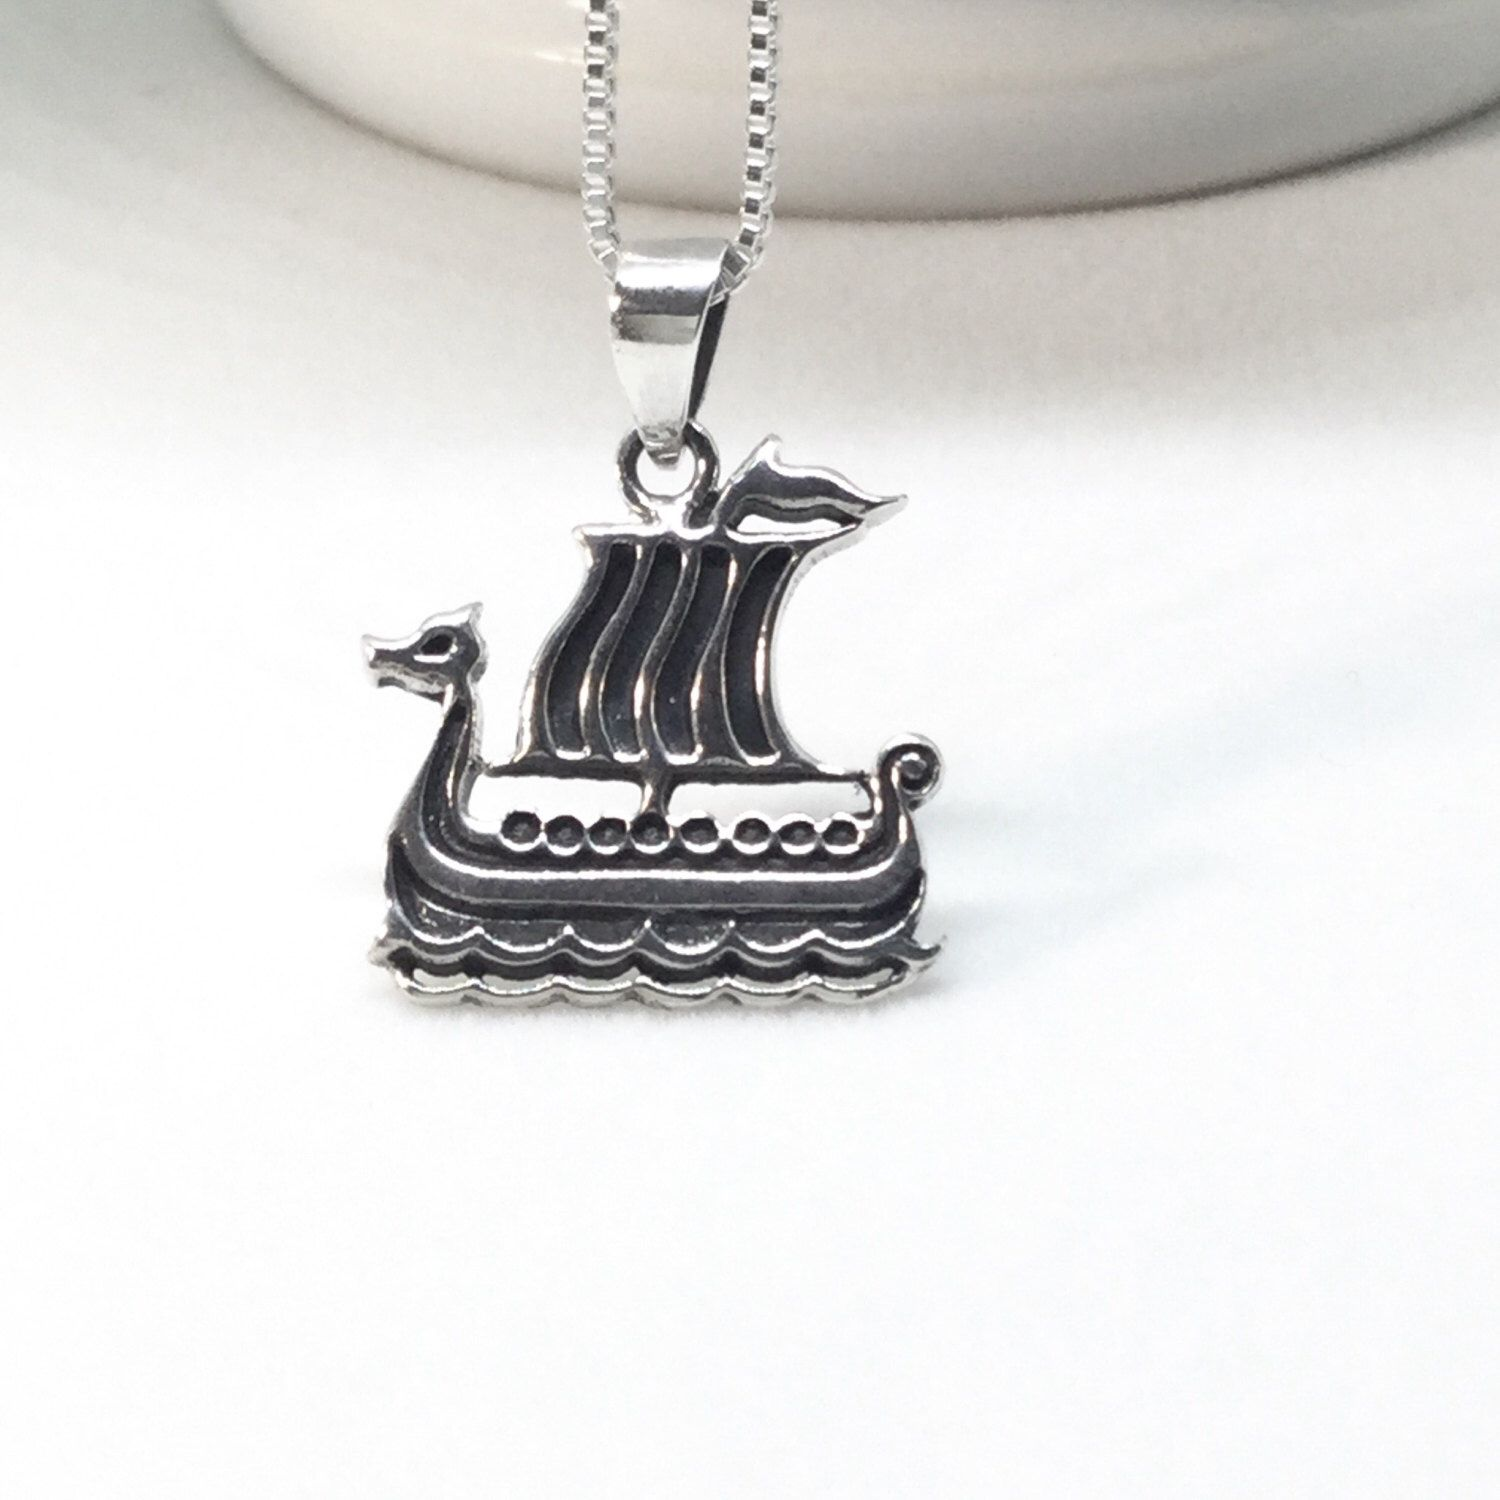 Viking Ship Necklace Sterling Silver Viking Necklace Viking  Boat Pendant 925 Silver Scandinavian Jewelry Dragon Boat Pendant by PetitDepot on Etsy https://www.etsy.com/uk/listing/494717721/viking-ship-necklace-sterling-silver